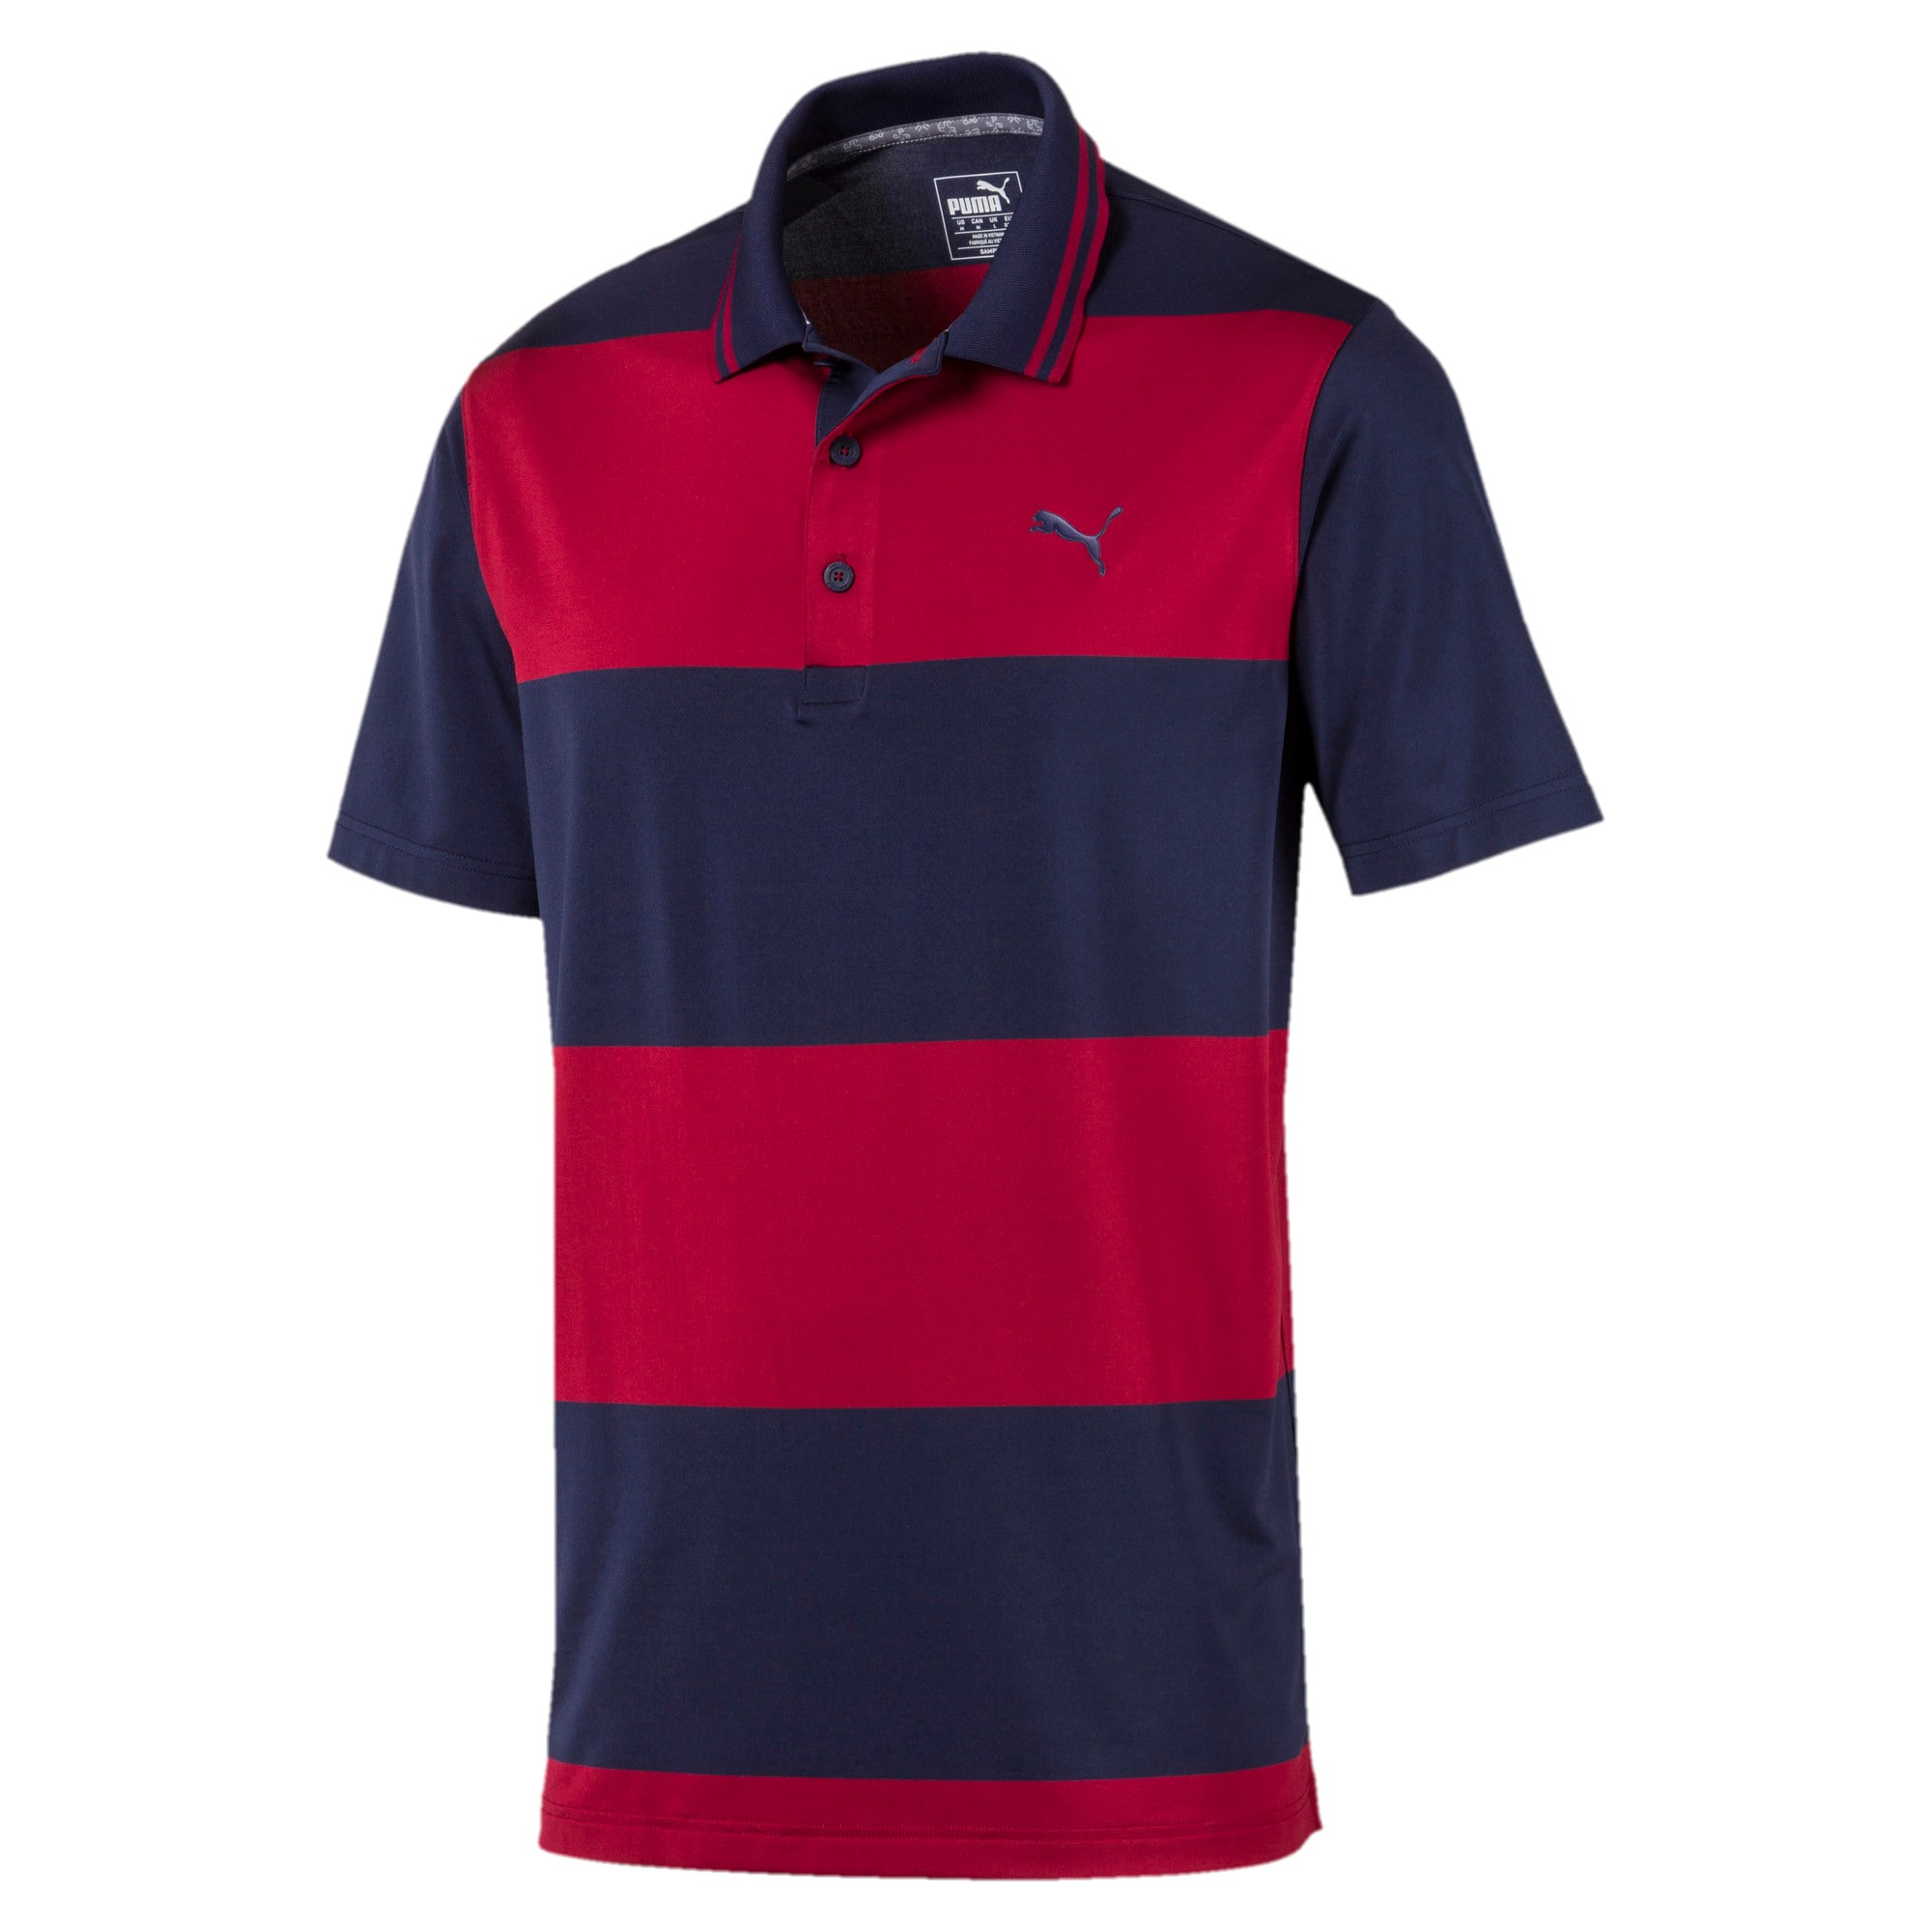 Thumbnail 4 of Polo Rugby Golf pour homme, Peacoat-Rhubarb, medium